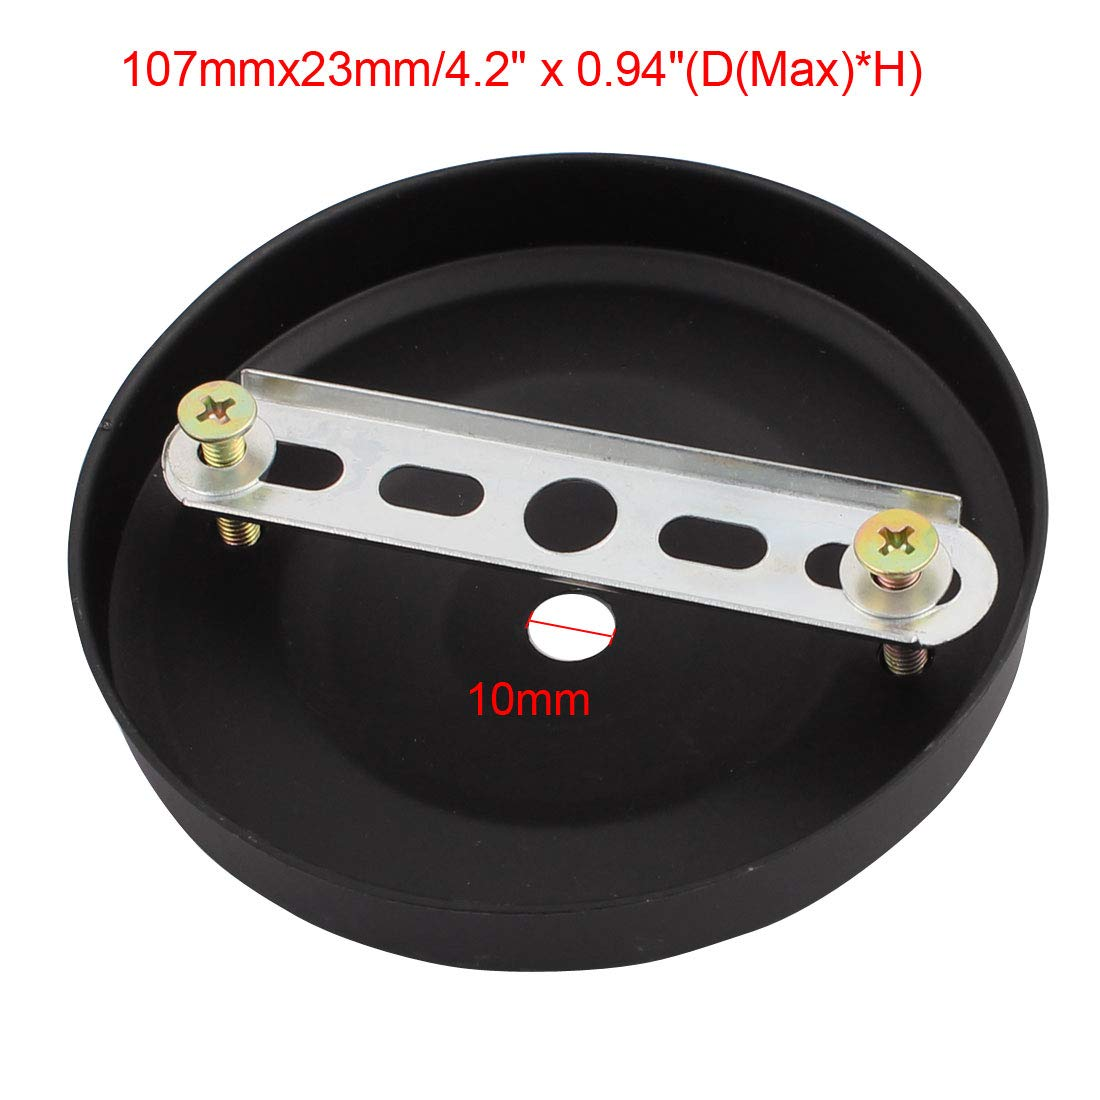 uxcell 3Pcs Ceiling Lamp Plate Pointed Base Disc Chassis Pendant Light Accessories 105mmx23mm w Screw LEPOA6307